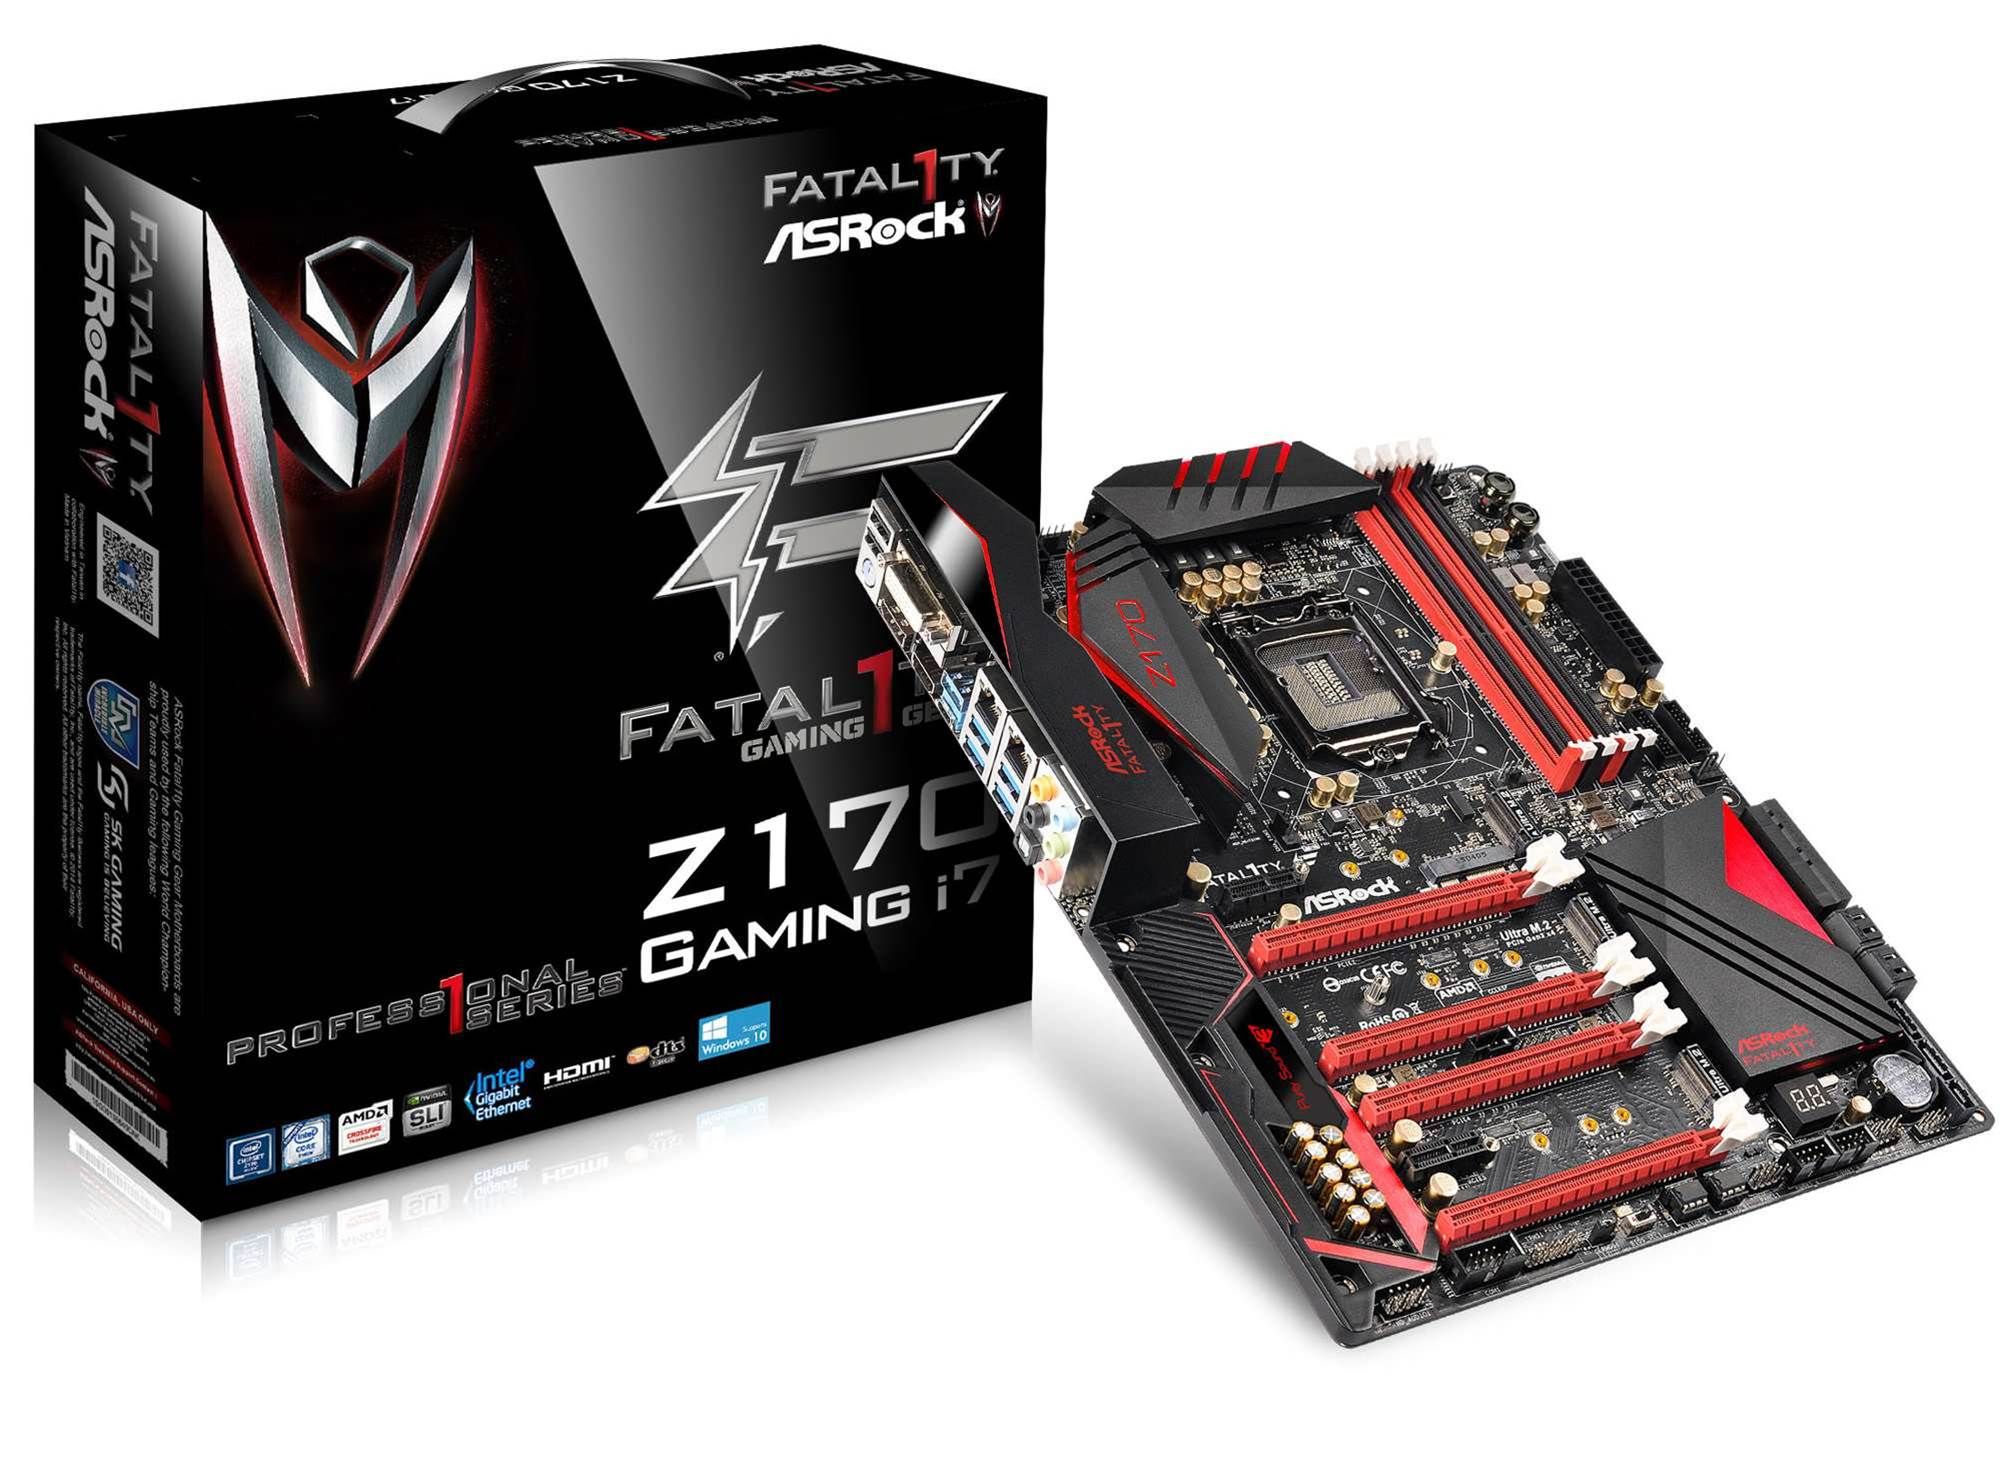 Asrock's new Fatal1ty Z170 Professional Gaming i7 is for 'serious gamers'